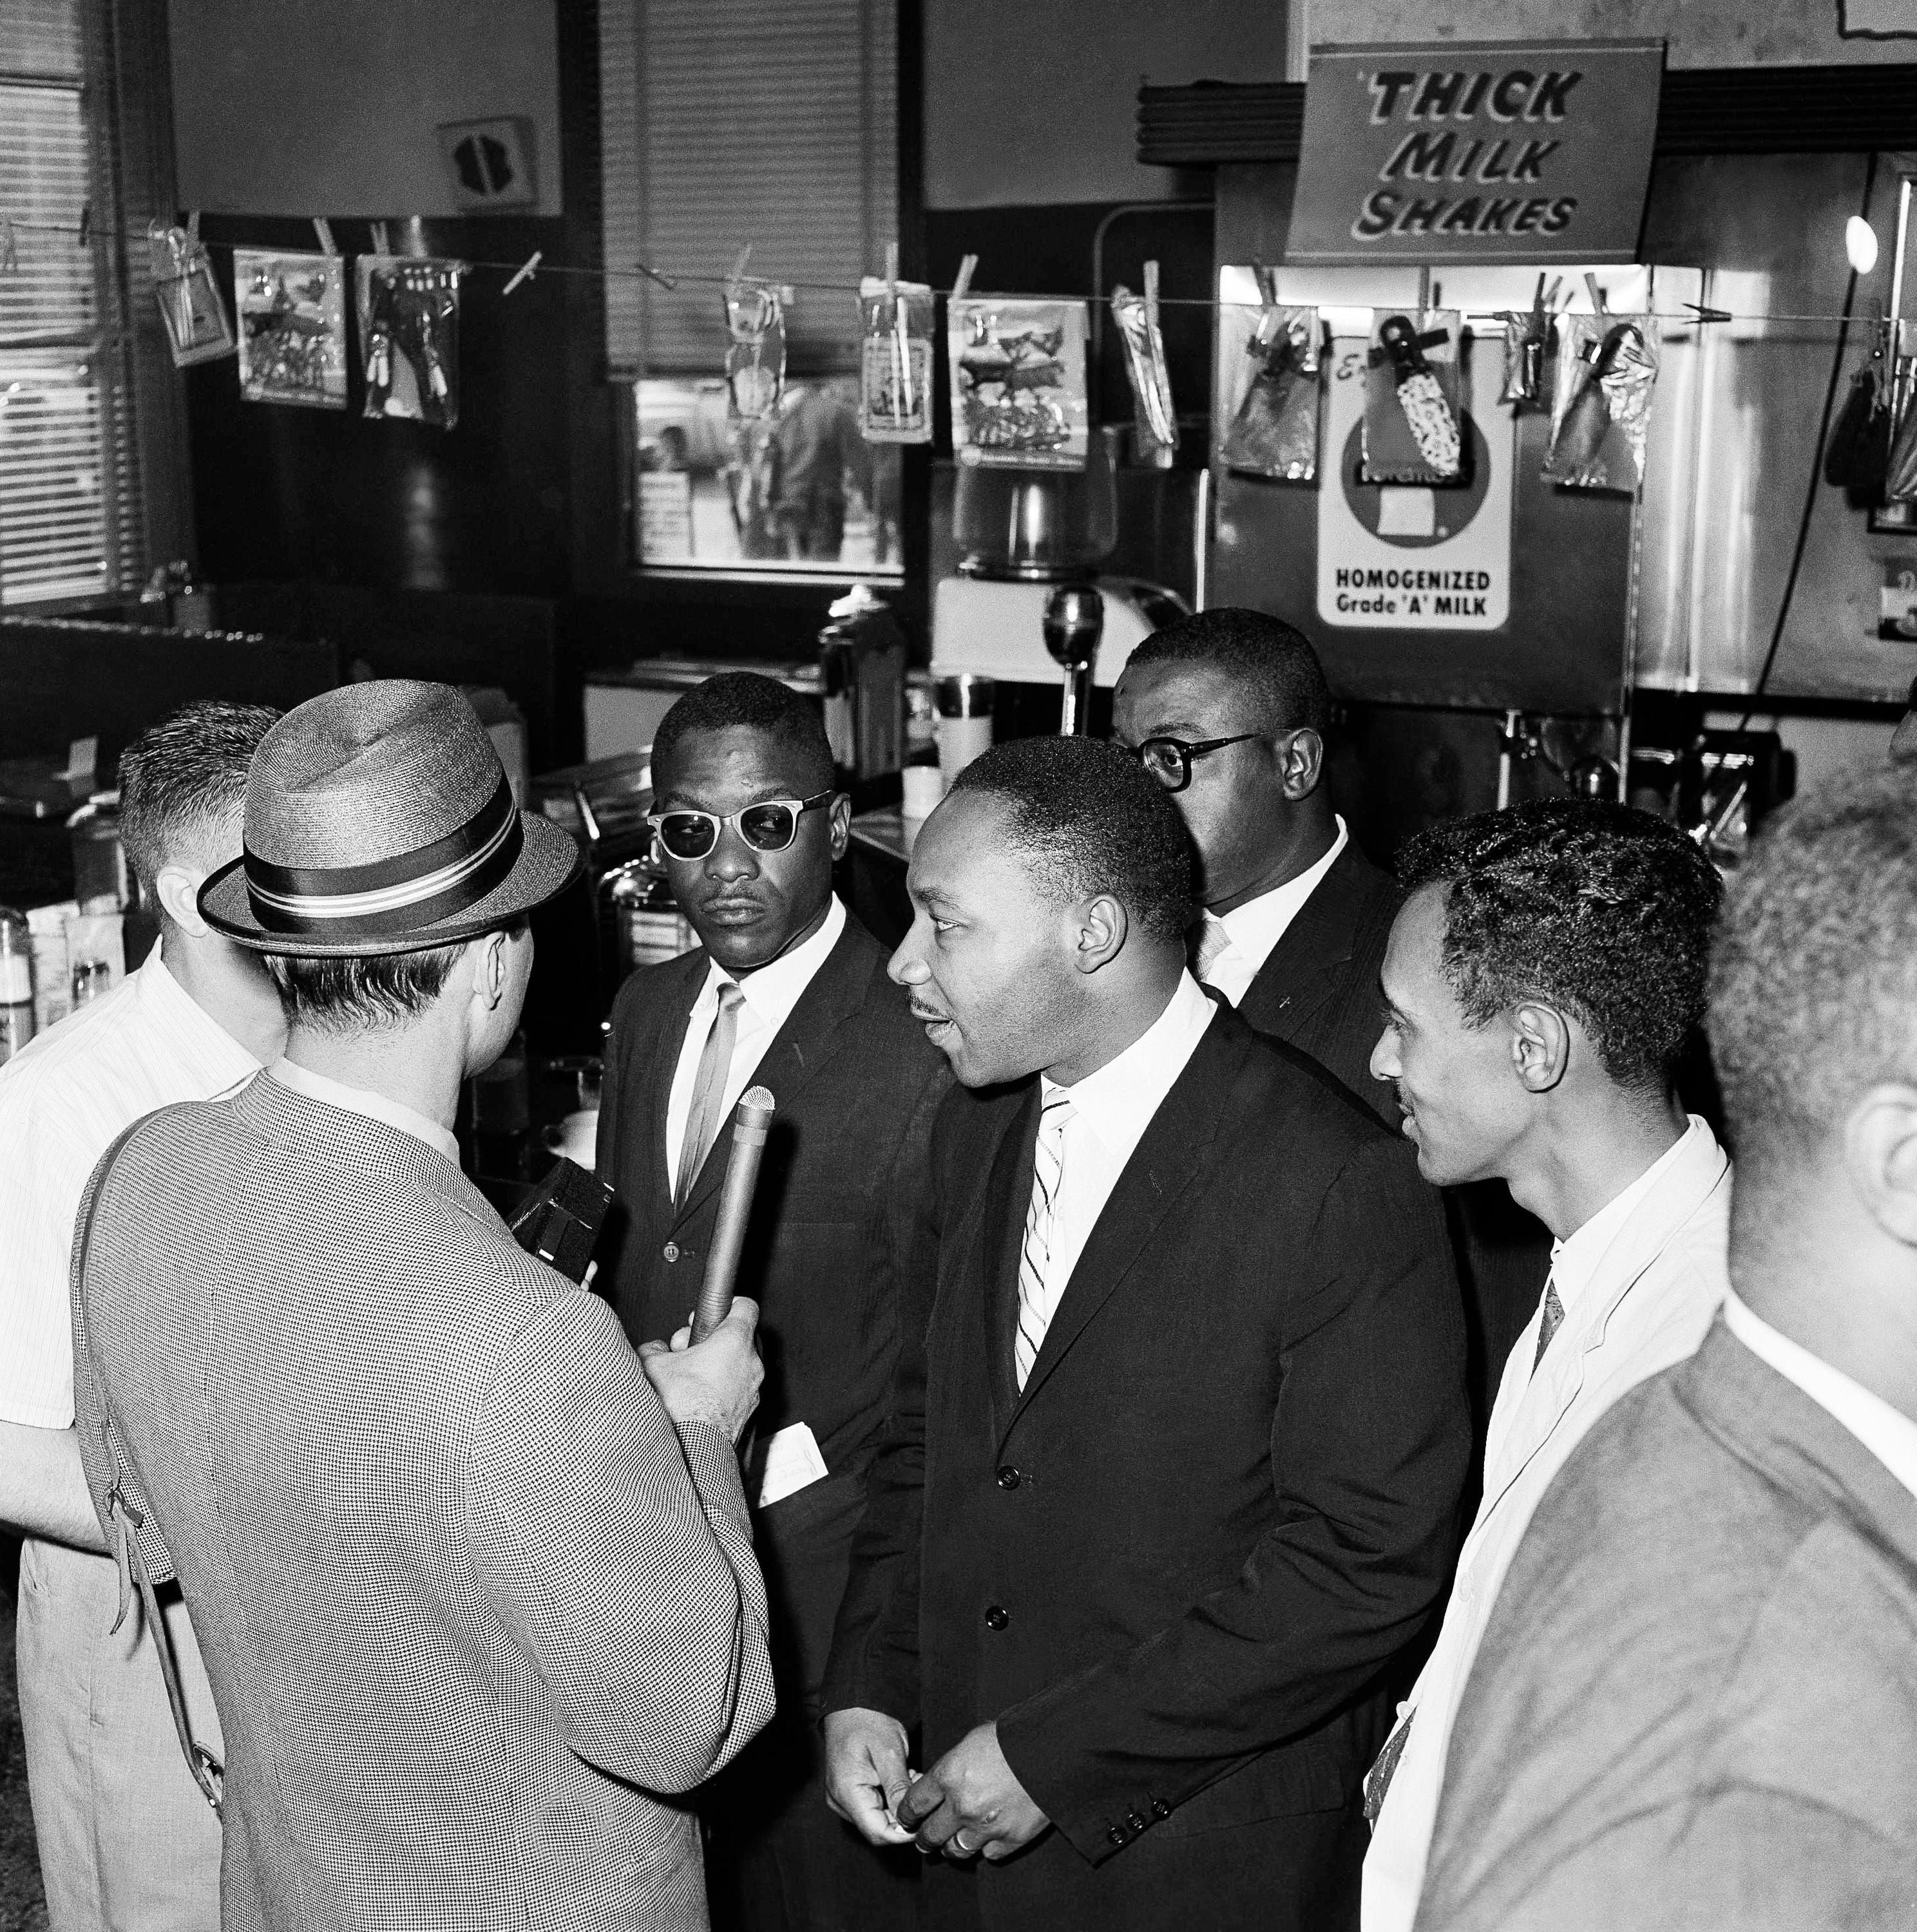 Freedom Riders at the bus station in Montgomery, Ala., on May 24, 1961, wait to purchase tickets to continue their ride through the South. At center is civil rights leader Martin Luther King Jr.